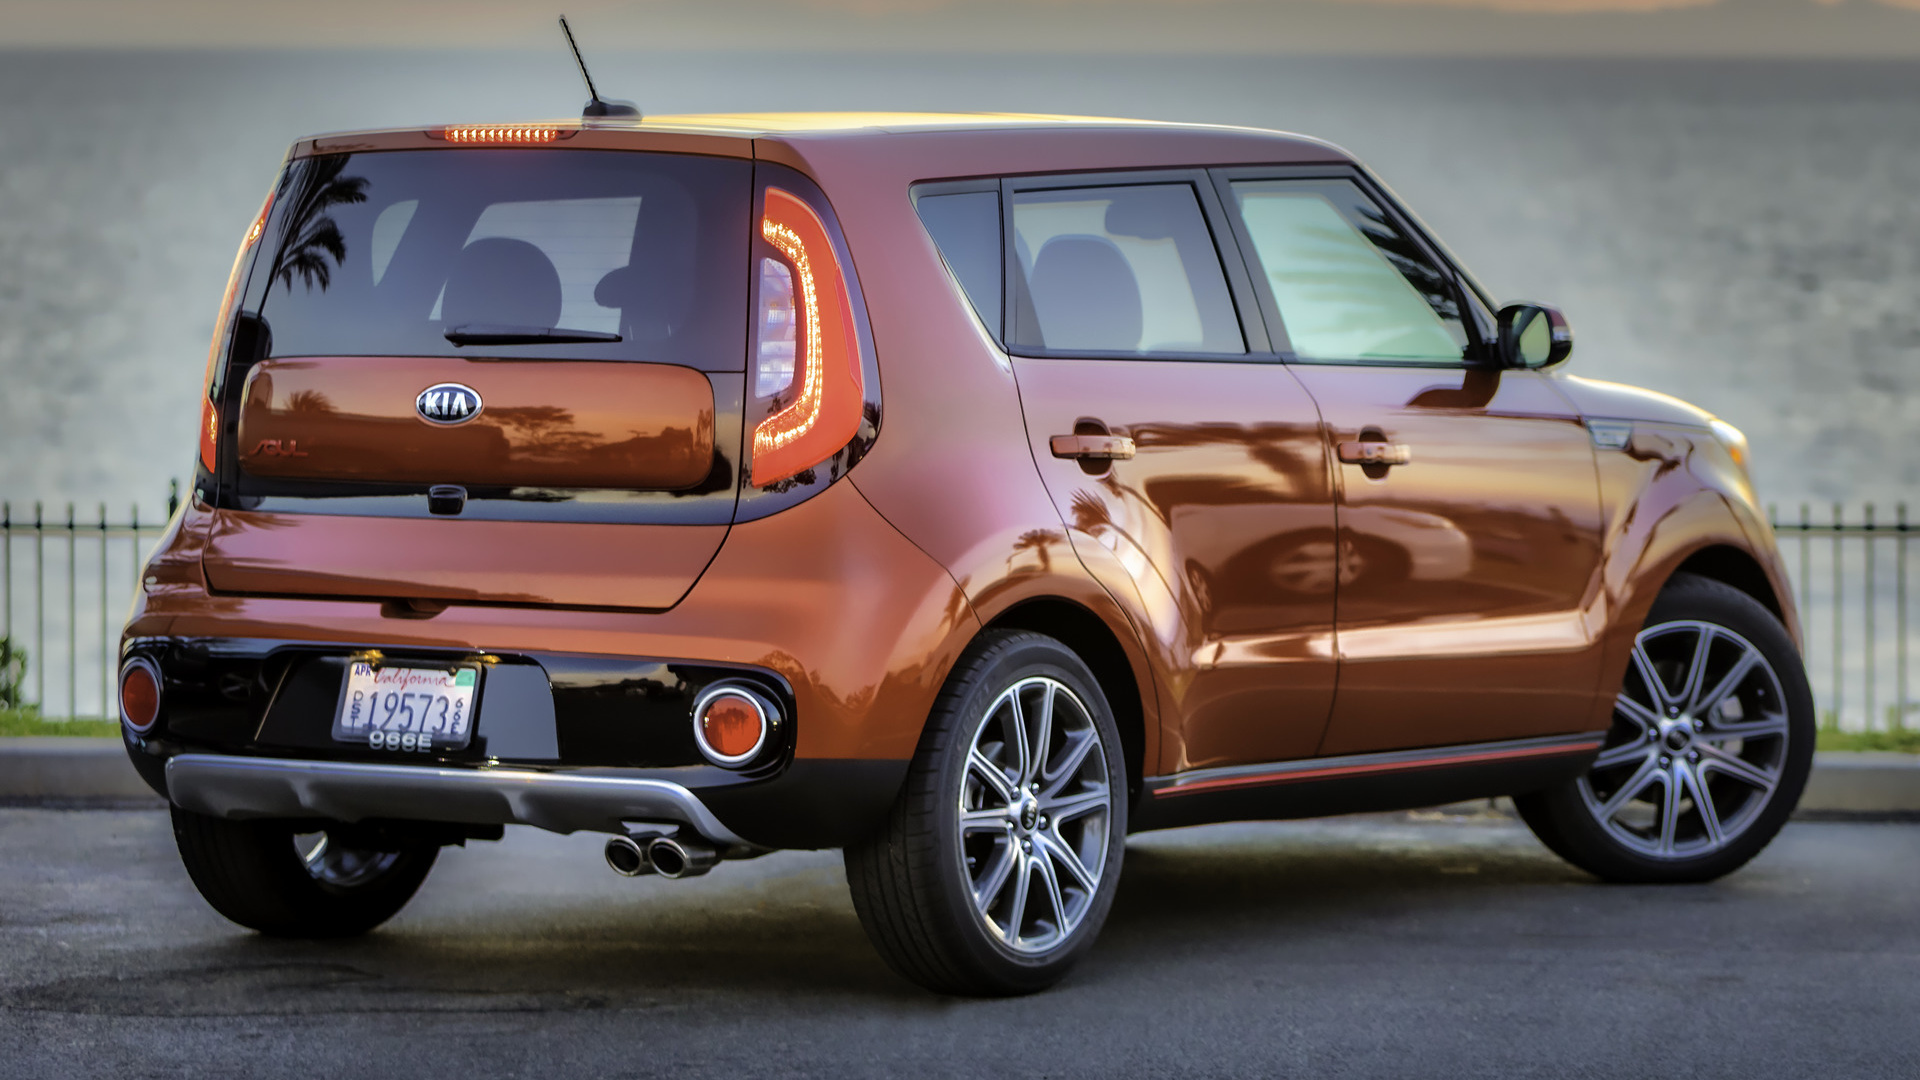 kia soul affordable hd most suv wallpapers inside suvs